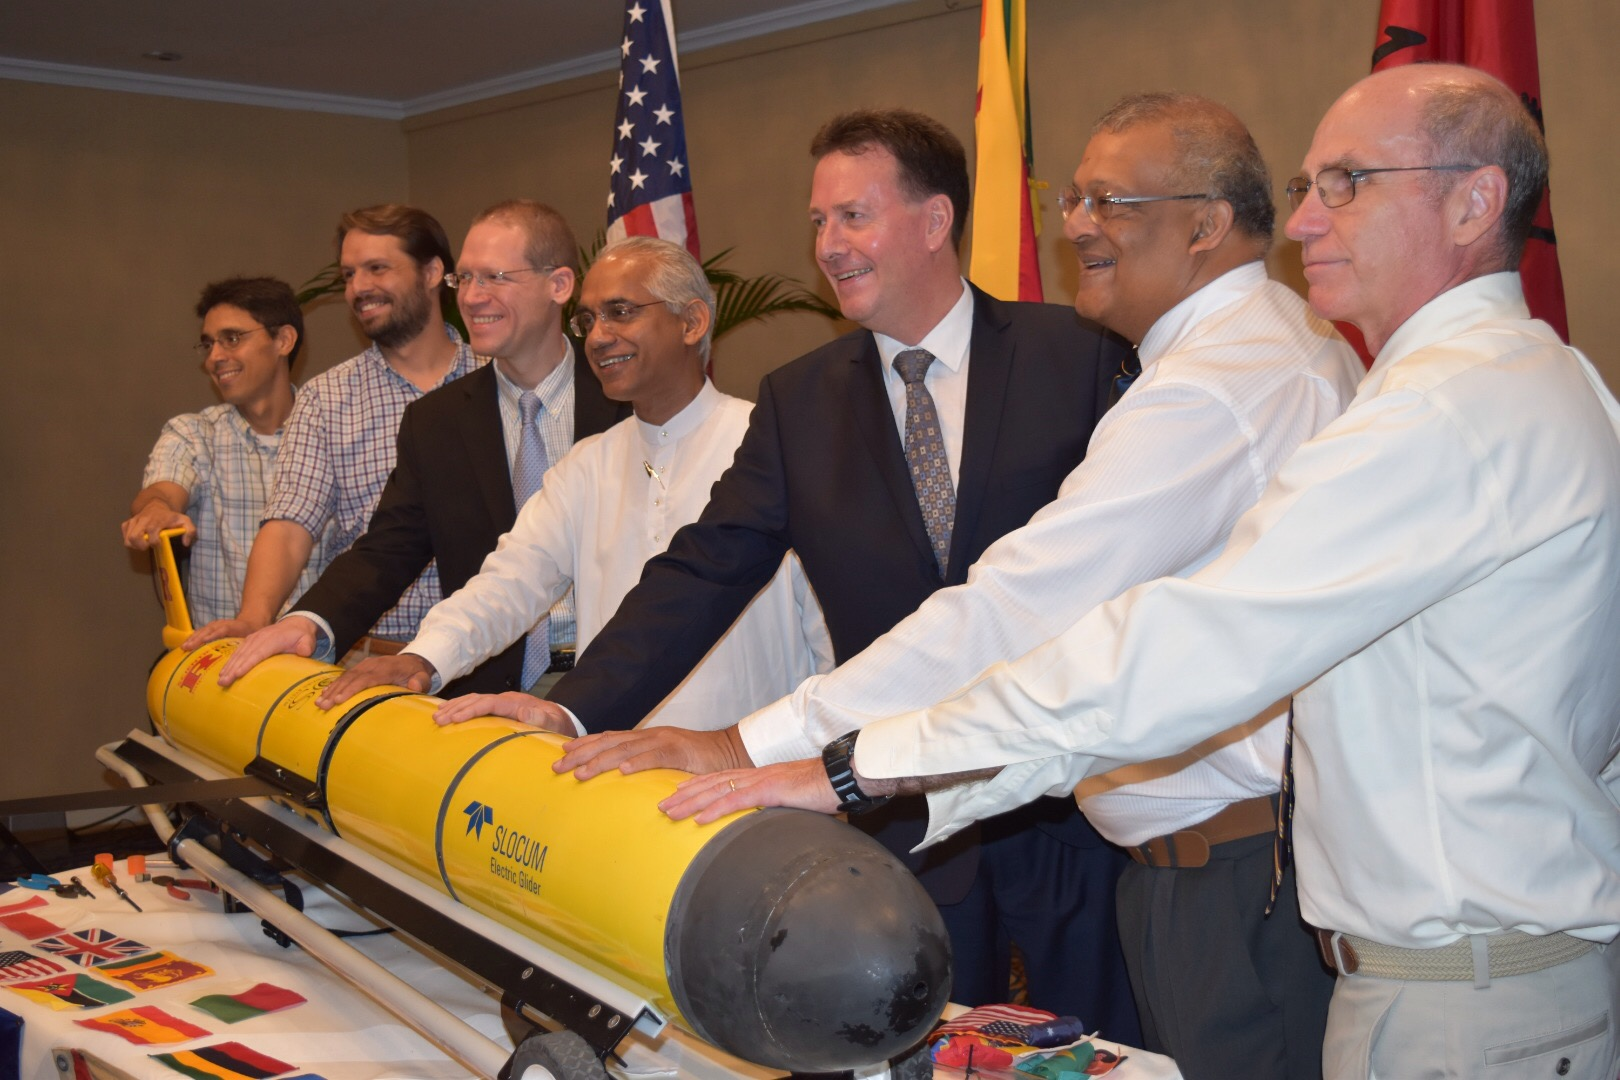 Challenger Ocean Glider Welcome Ceremony, Colombo, Sri Lanka.  October 2, 2017.  Left to Right: Dave Aragon, Rutgers University; Travis Miles, Rutgers University; Michael Cragun US Embassy Representative; Hon Eran Wickremaratne, Sri Lankan State Minister for Finance; Hon Bryce Hutcheson, Australian High Commissioner; Chari Pattiaratchi, University of Western Australia; and Scott Glenn, Rutgers University.